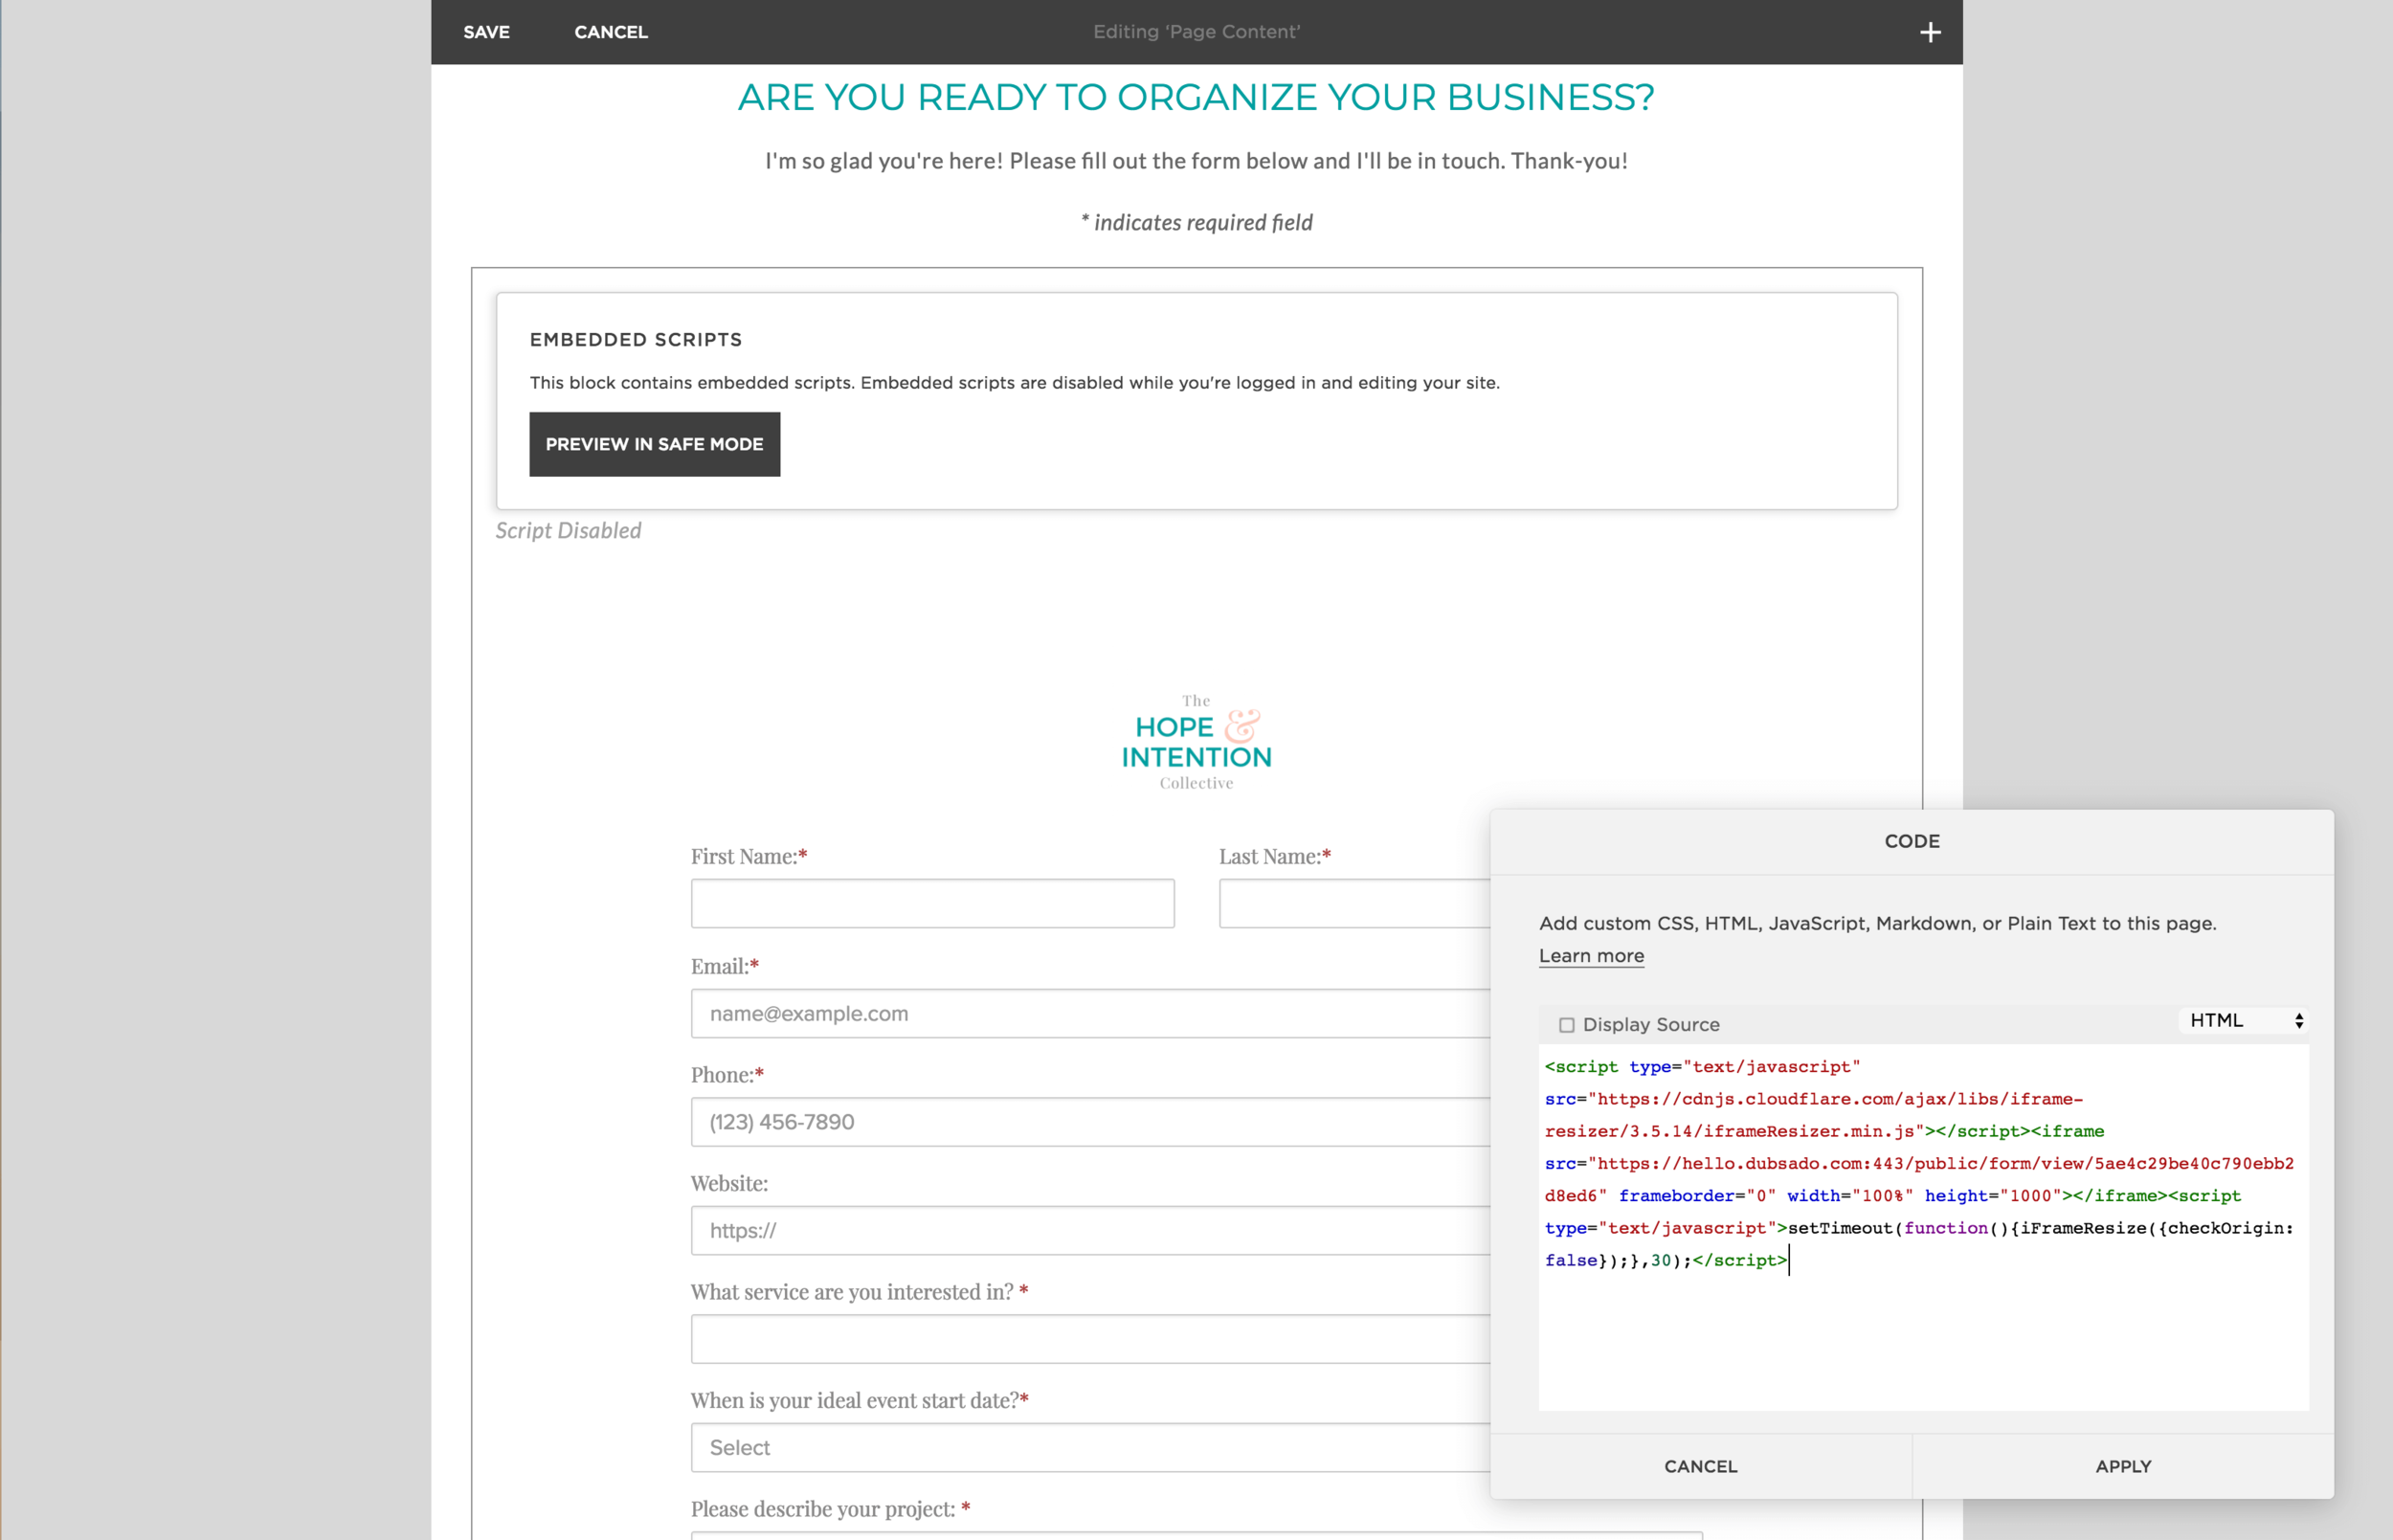 Coping the Dubsado Lead Capture Form HTML Code into a Code Block on Squarespace